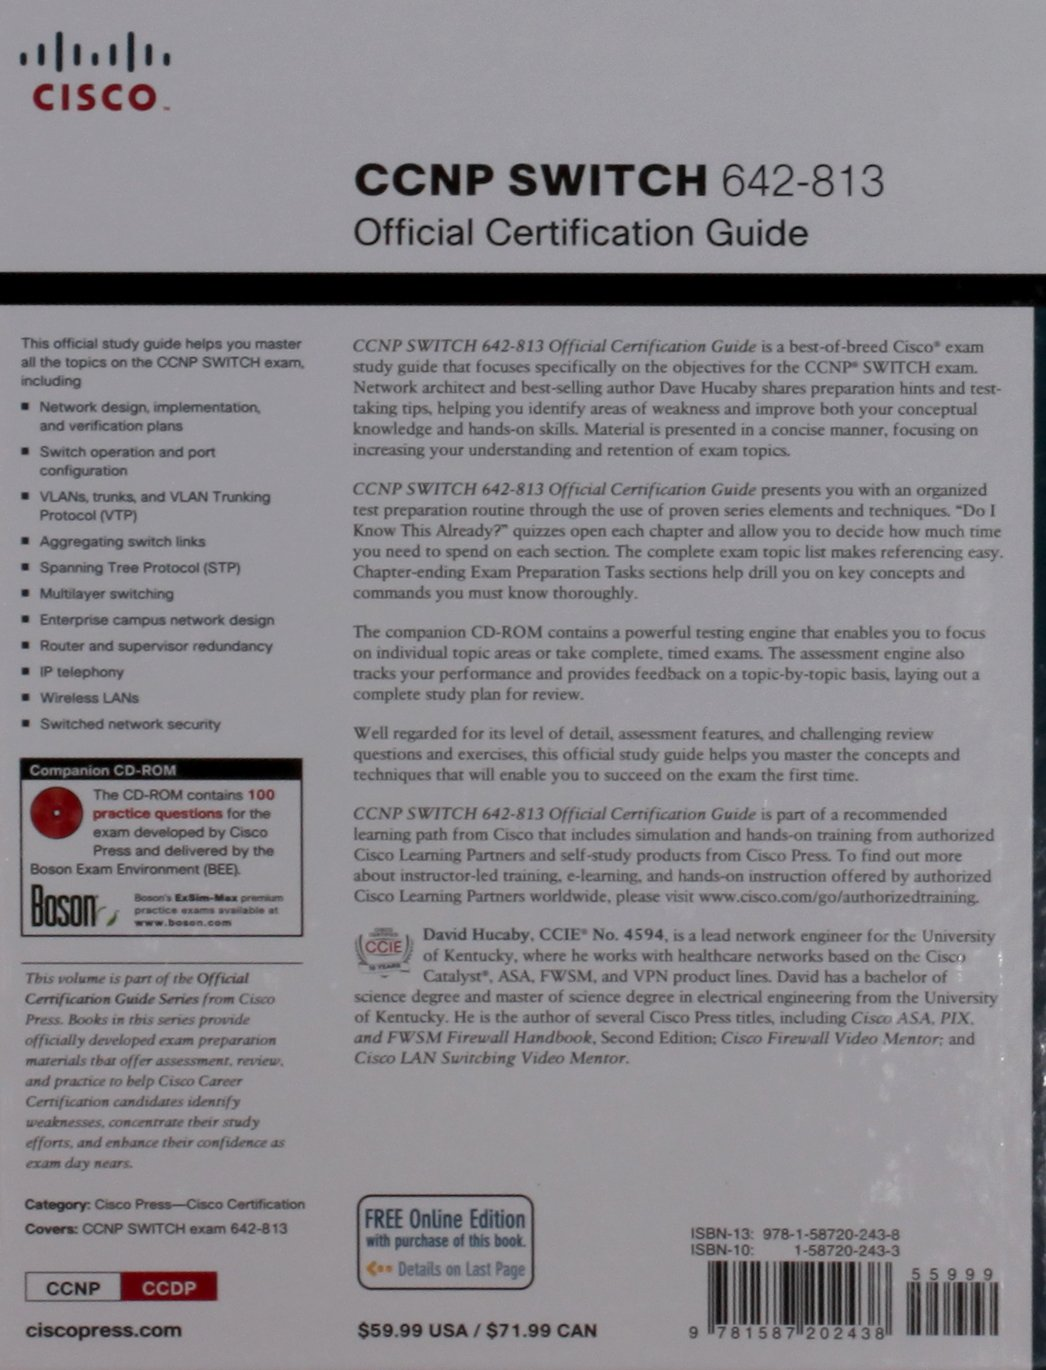 Ccnp switch 642 813 official certification guide ccnp switch exam ccnp switch 642 813 official certification guide ccnp switch exam preparation amazon david hucaby 9781587202438 books 1betcityfo Choice Image